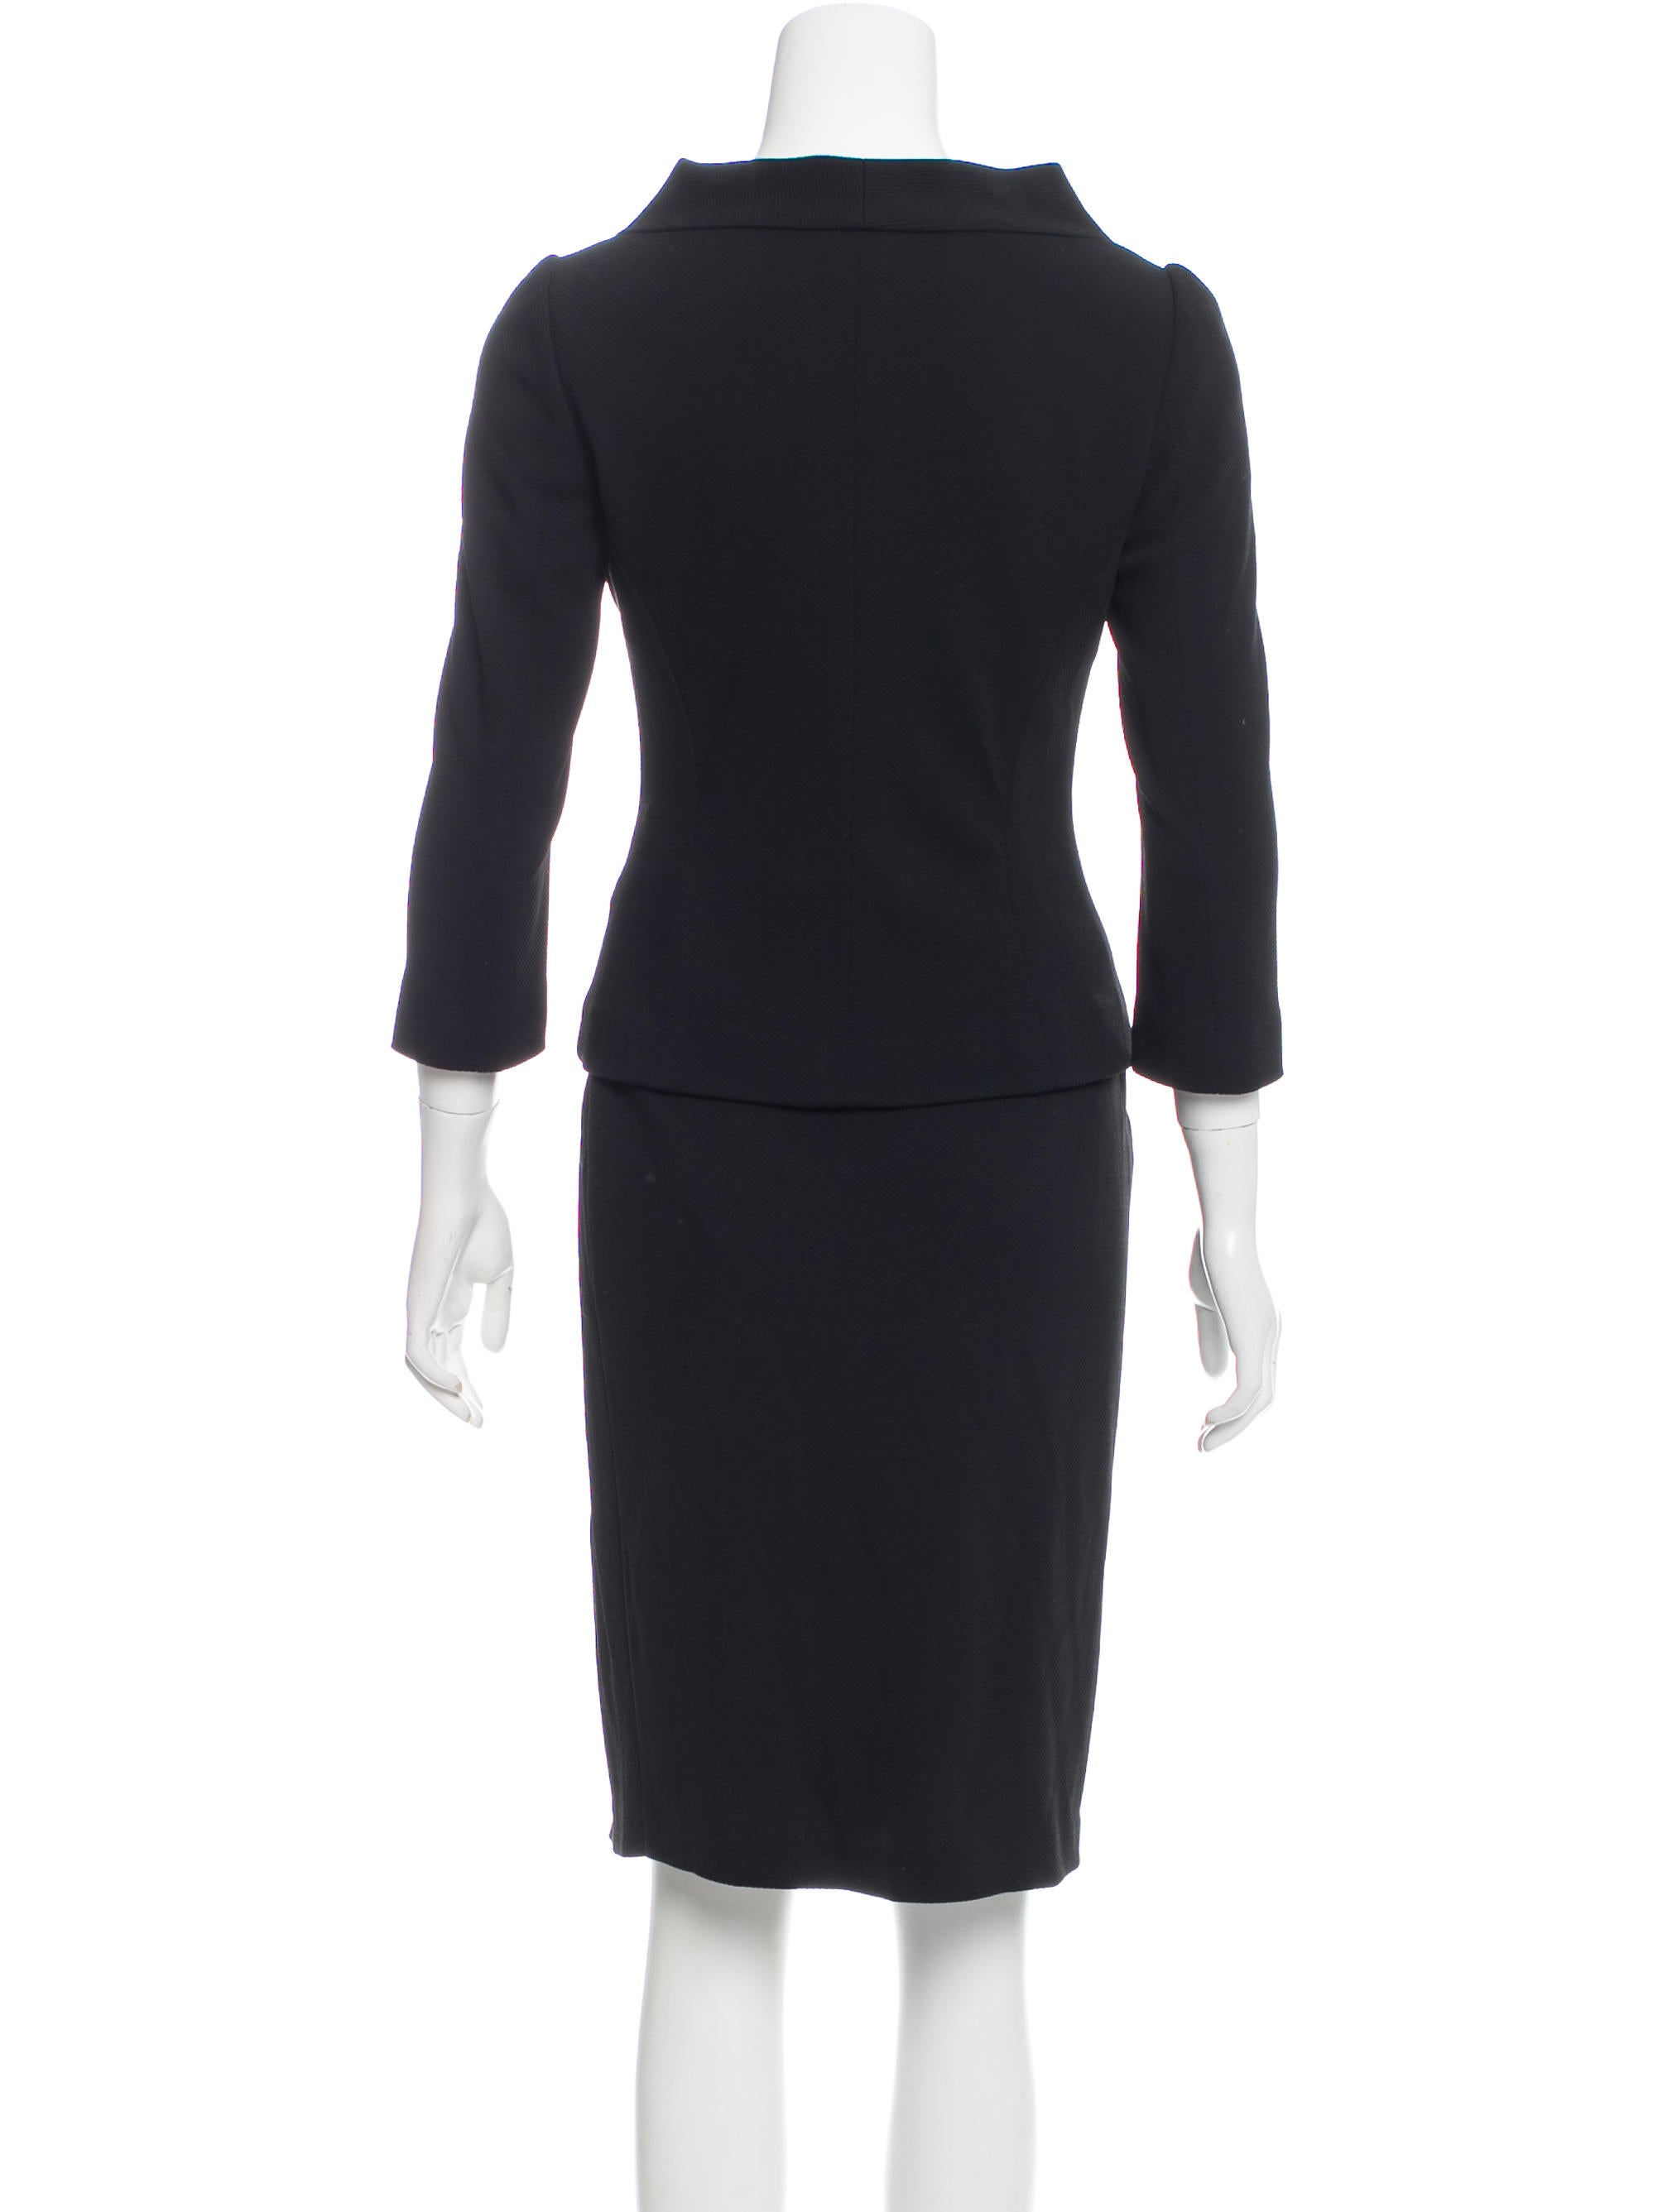 fendi pleated skirt suit clothing fen56375 the realreal